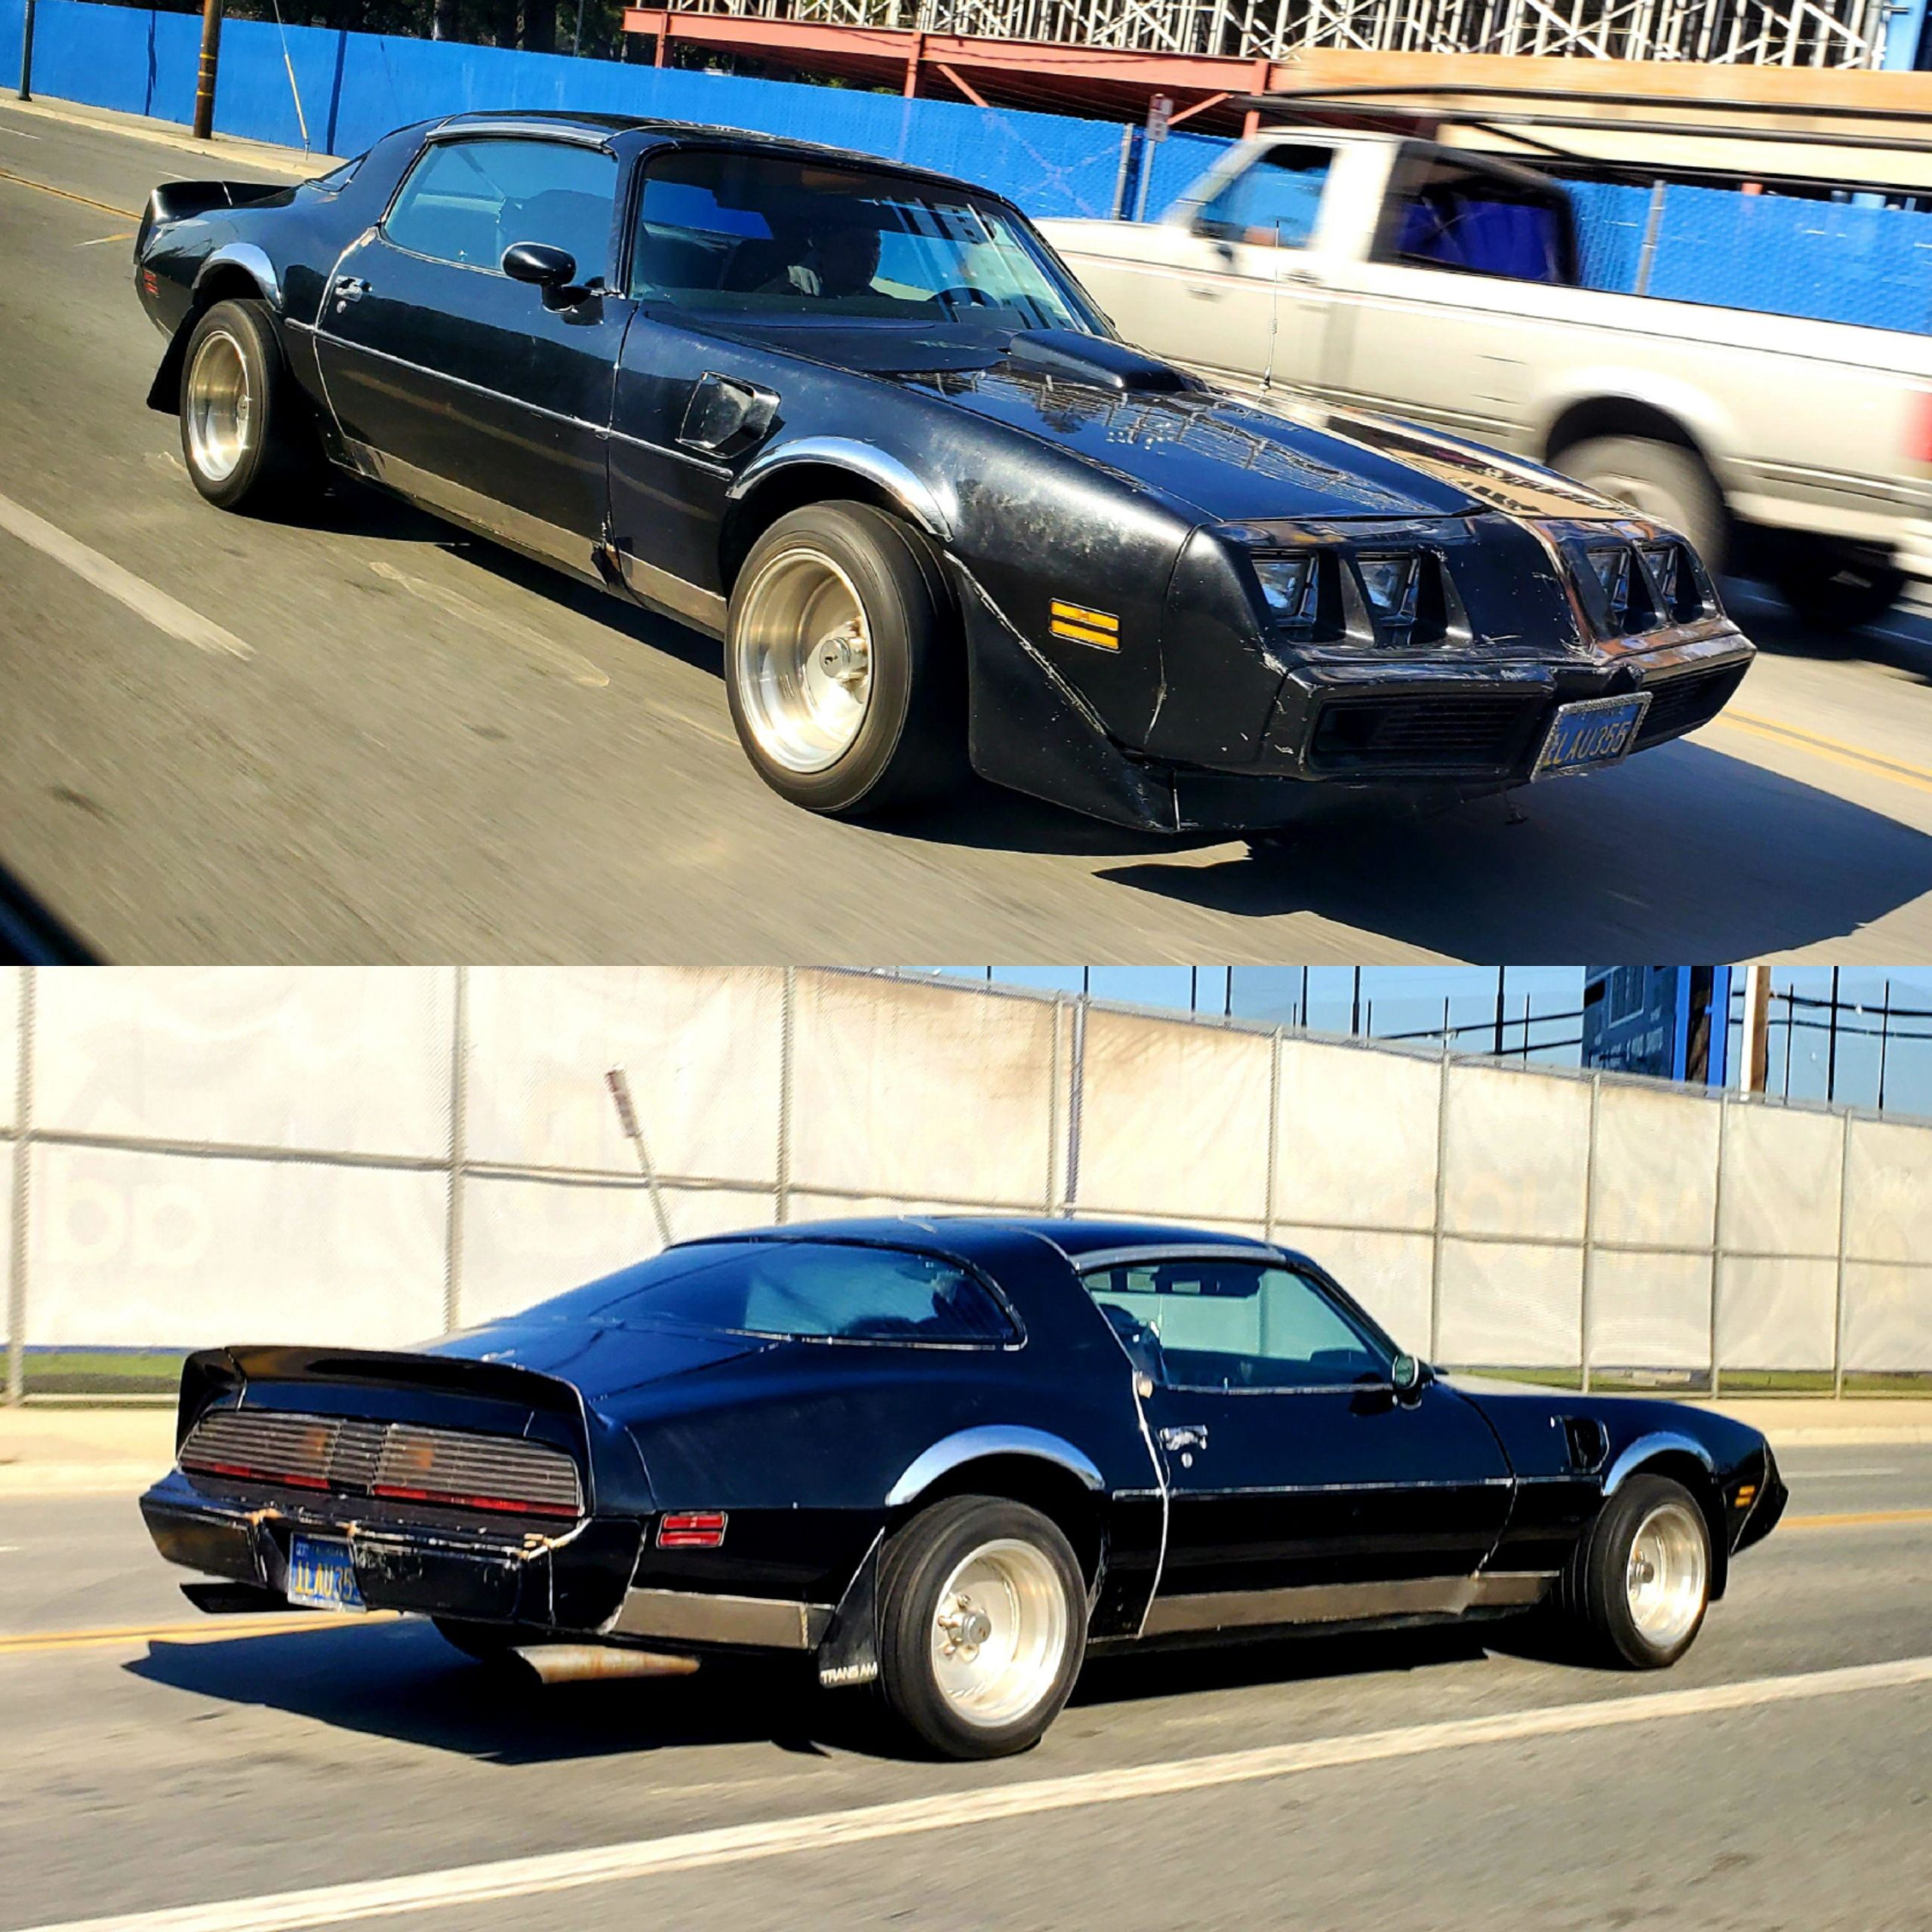 Rolling shots of an old firebird